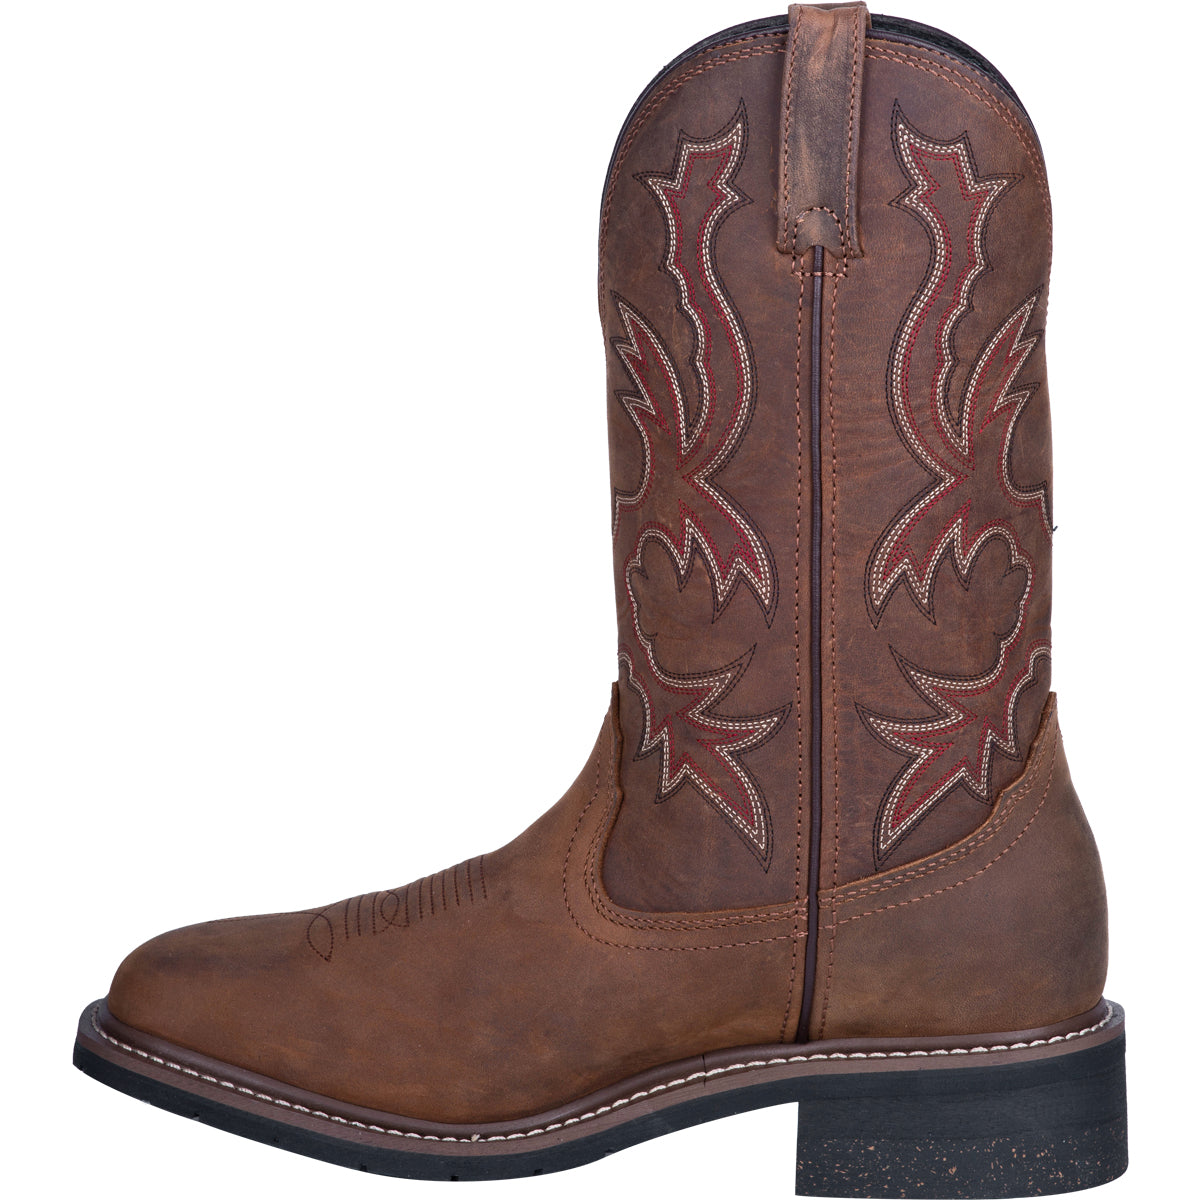 NOGALES WATERPROOF LEATHER BOOT 15521806385194